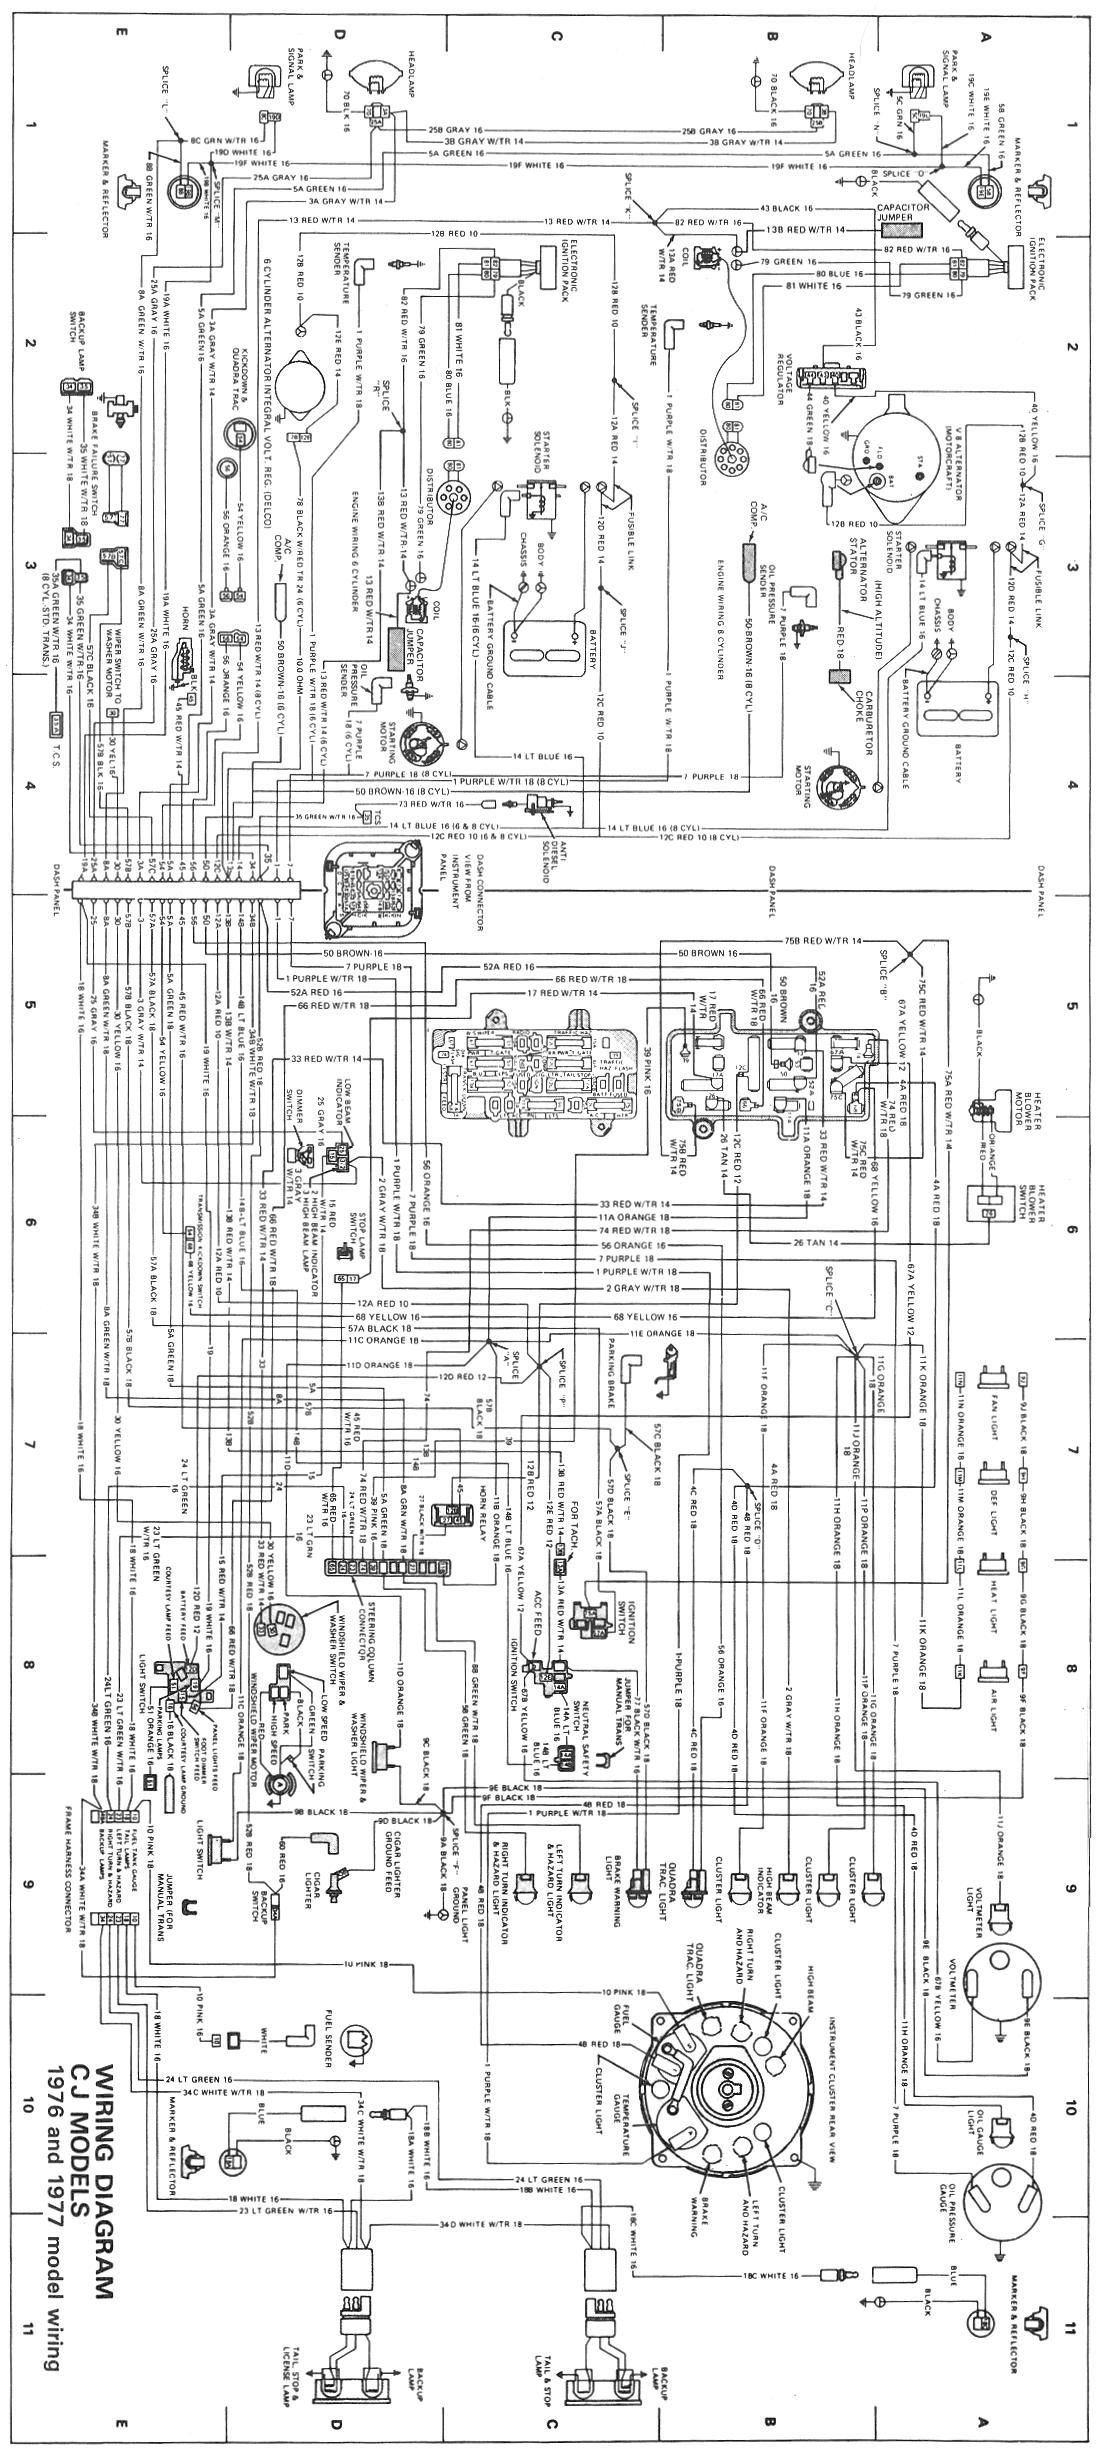 hight resolution of jeep wiring diagrams 1976 and 1977 cj jeep wiring pinterest rh pinterest com 1946 willys jeep wiring harness 1945 willys jeep